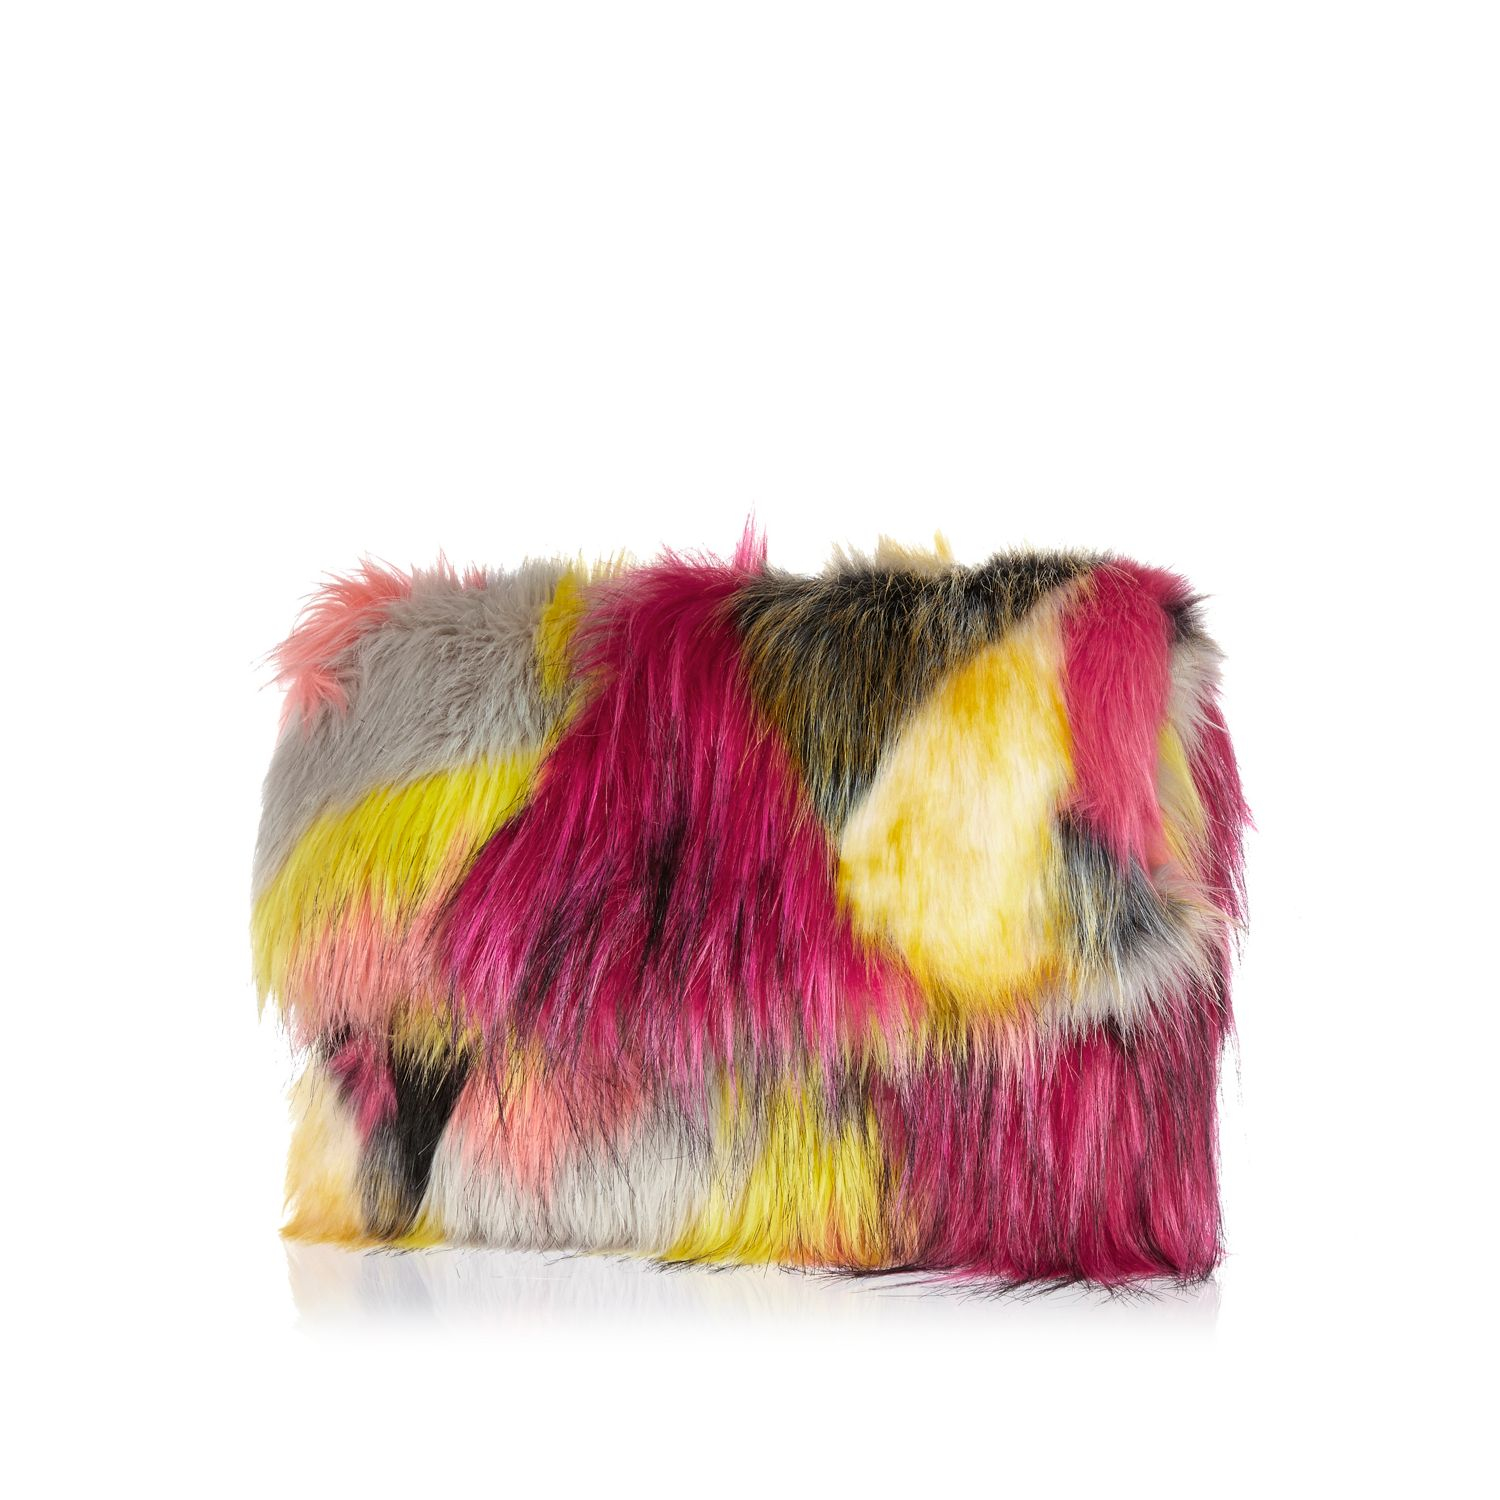 c30125ab7b1d River Island Pink Faux Fur Clutch Bag in Pink - Lyst